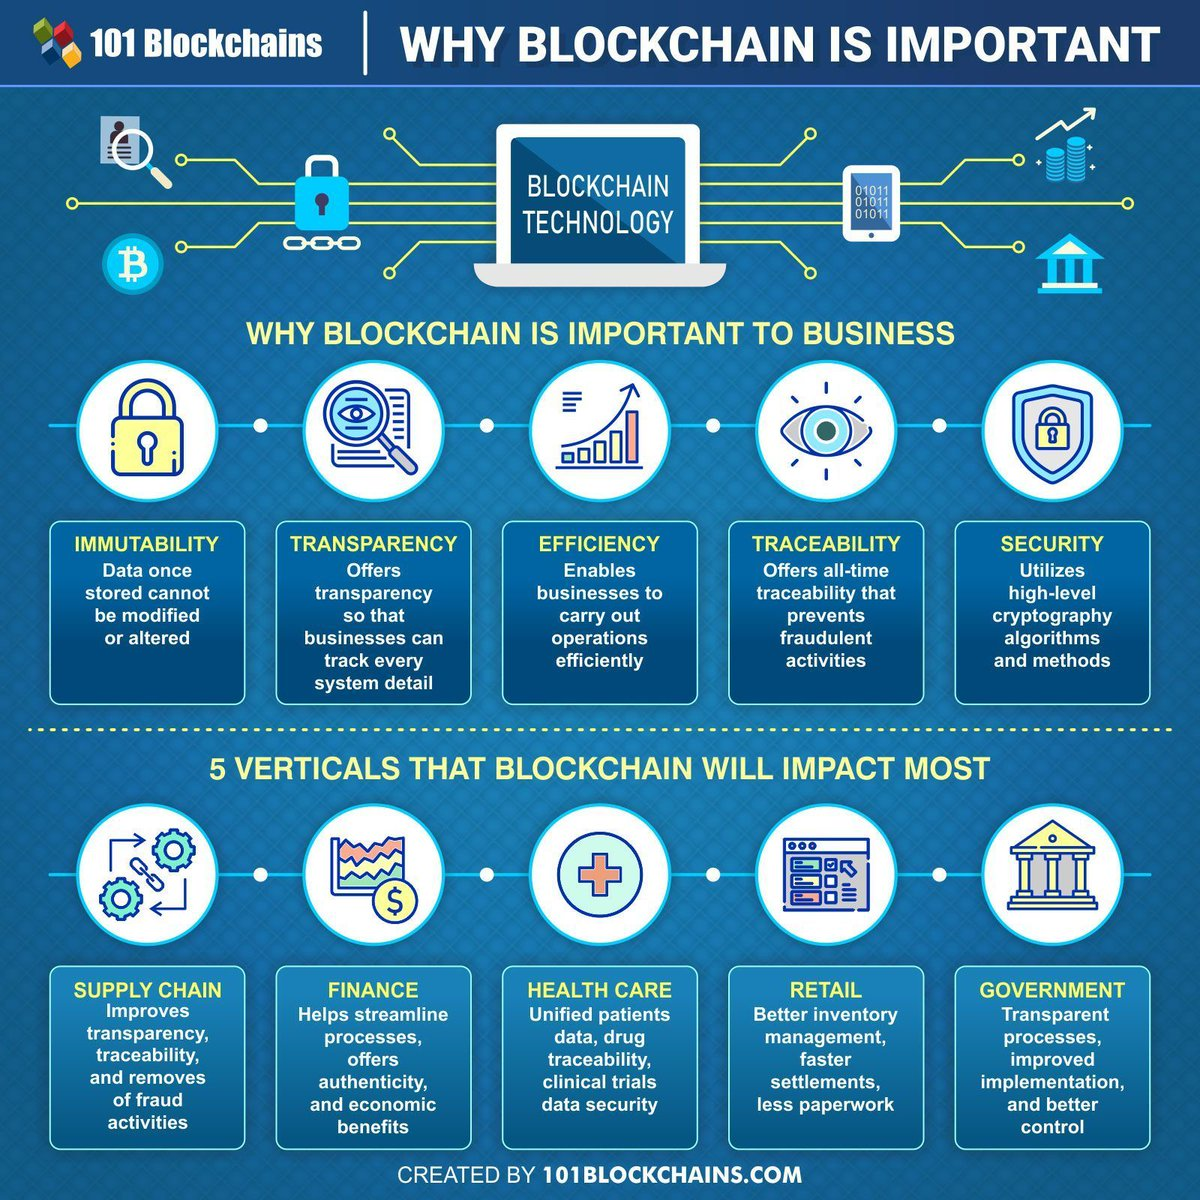 5 reasons #Blockchain can be important to the #Enterprise >>> @101Blockchains via @MikeQuindazzi >>> #FinTech #Payments #Smartcontracts #FinServ >>> #Infographics >>> https://t.co/QQOBf8LcWe https://t.co/YqAJfEaa1S